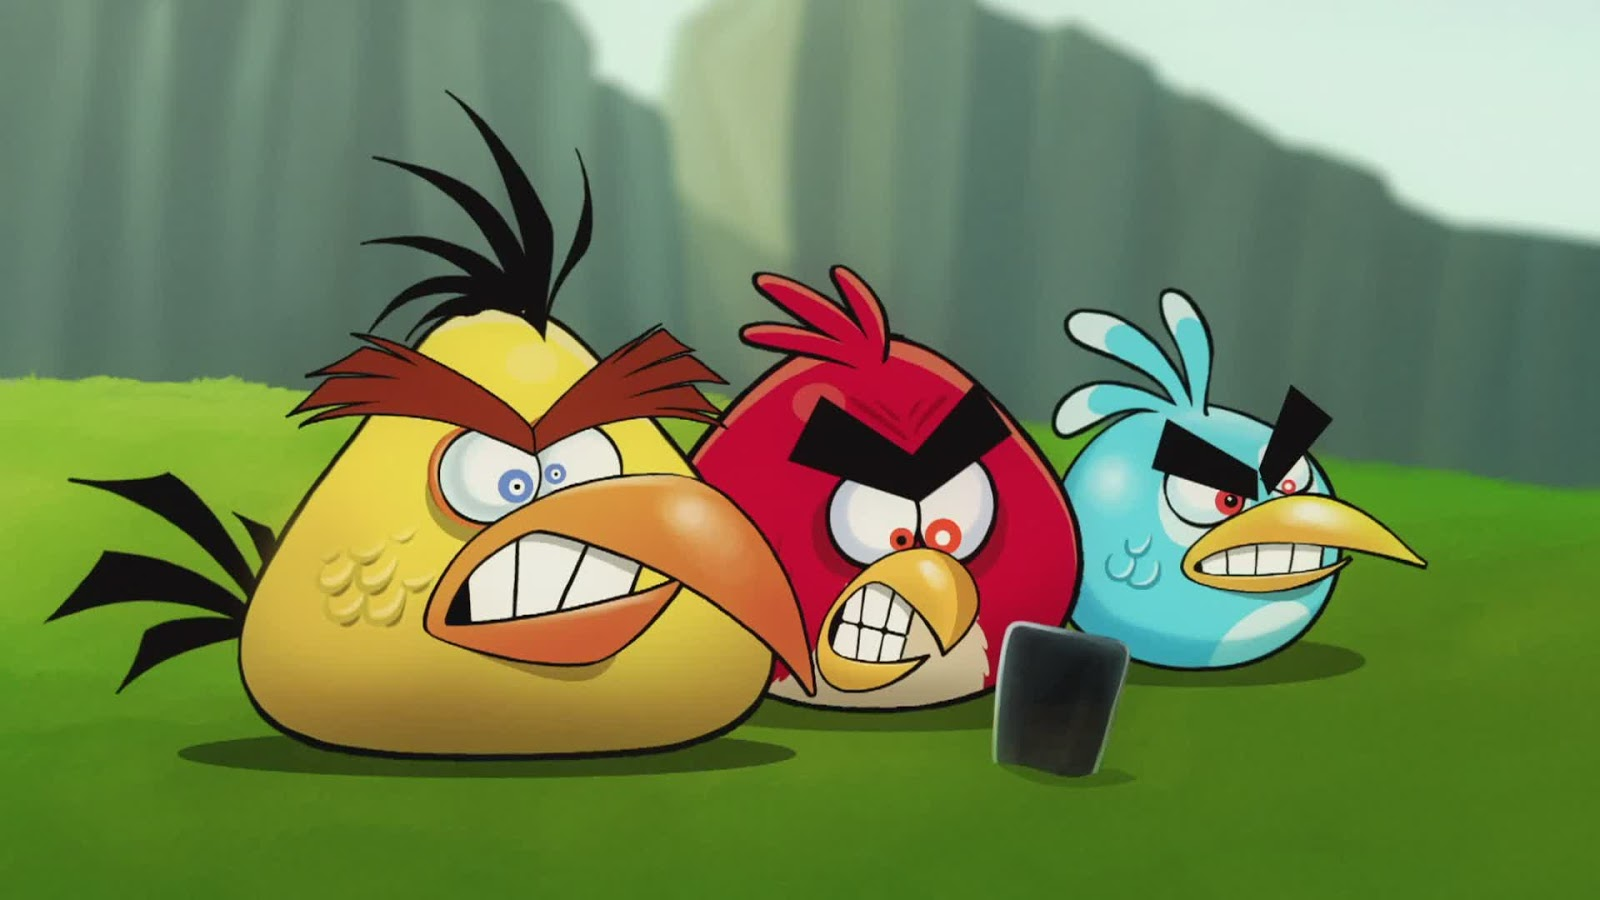 Wallpapers HD: 145 Wallpapers Angry Birds HD Backgrounds